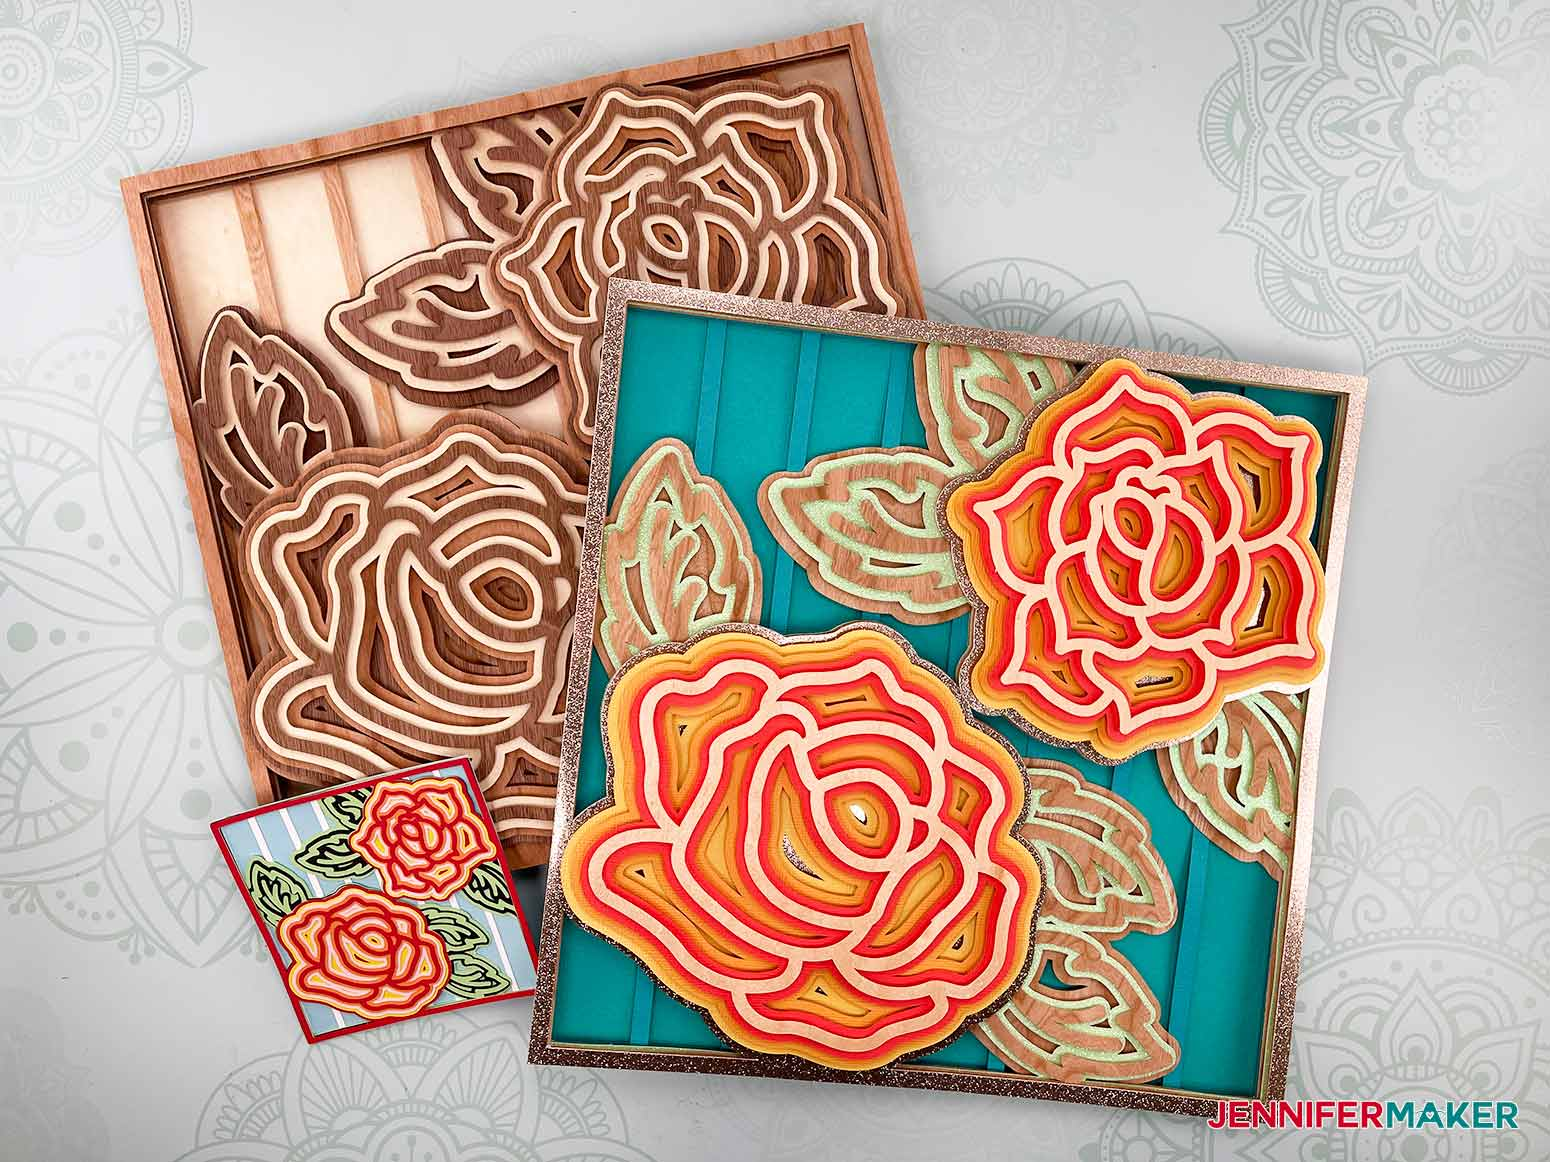 These are three of my Layered Mandala Rose 3D designs assembled